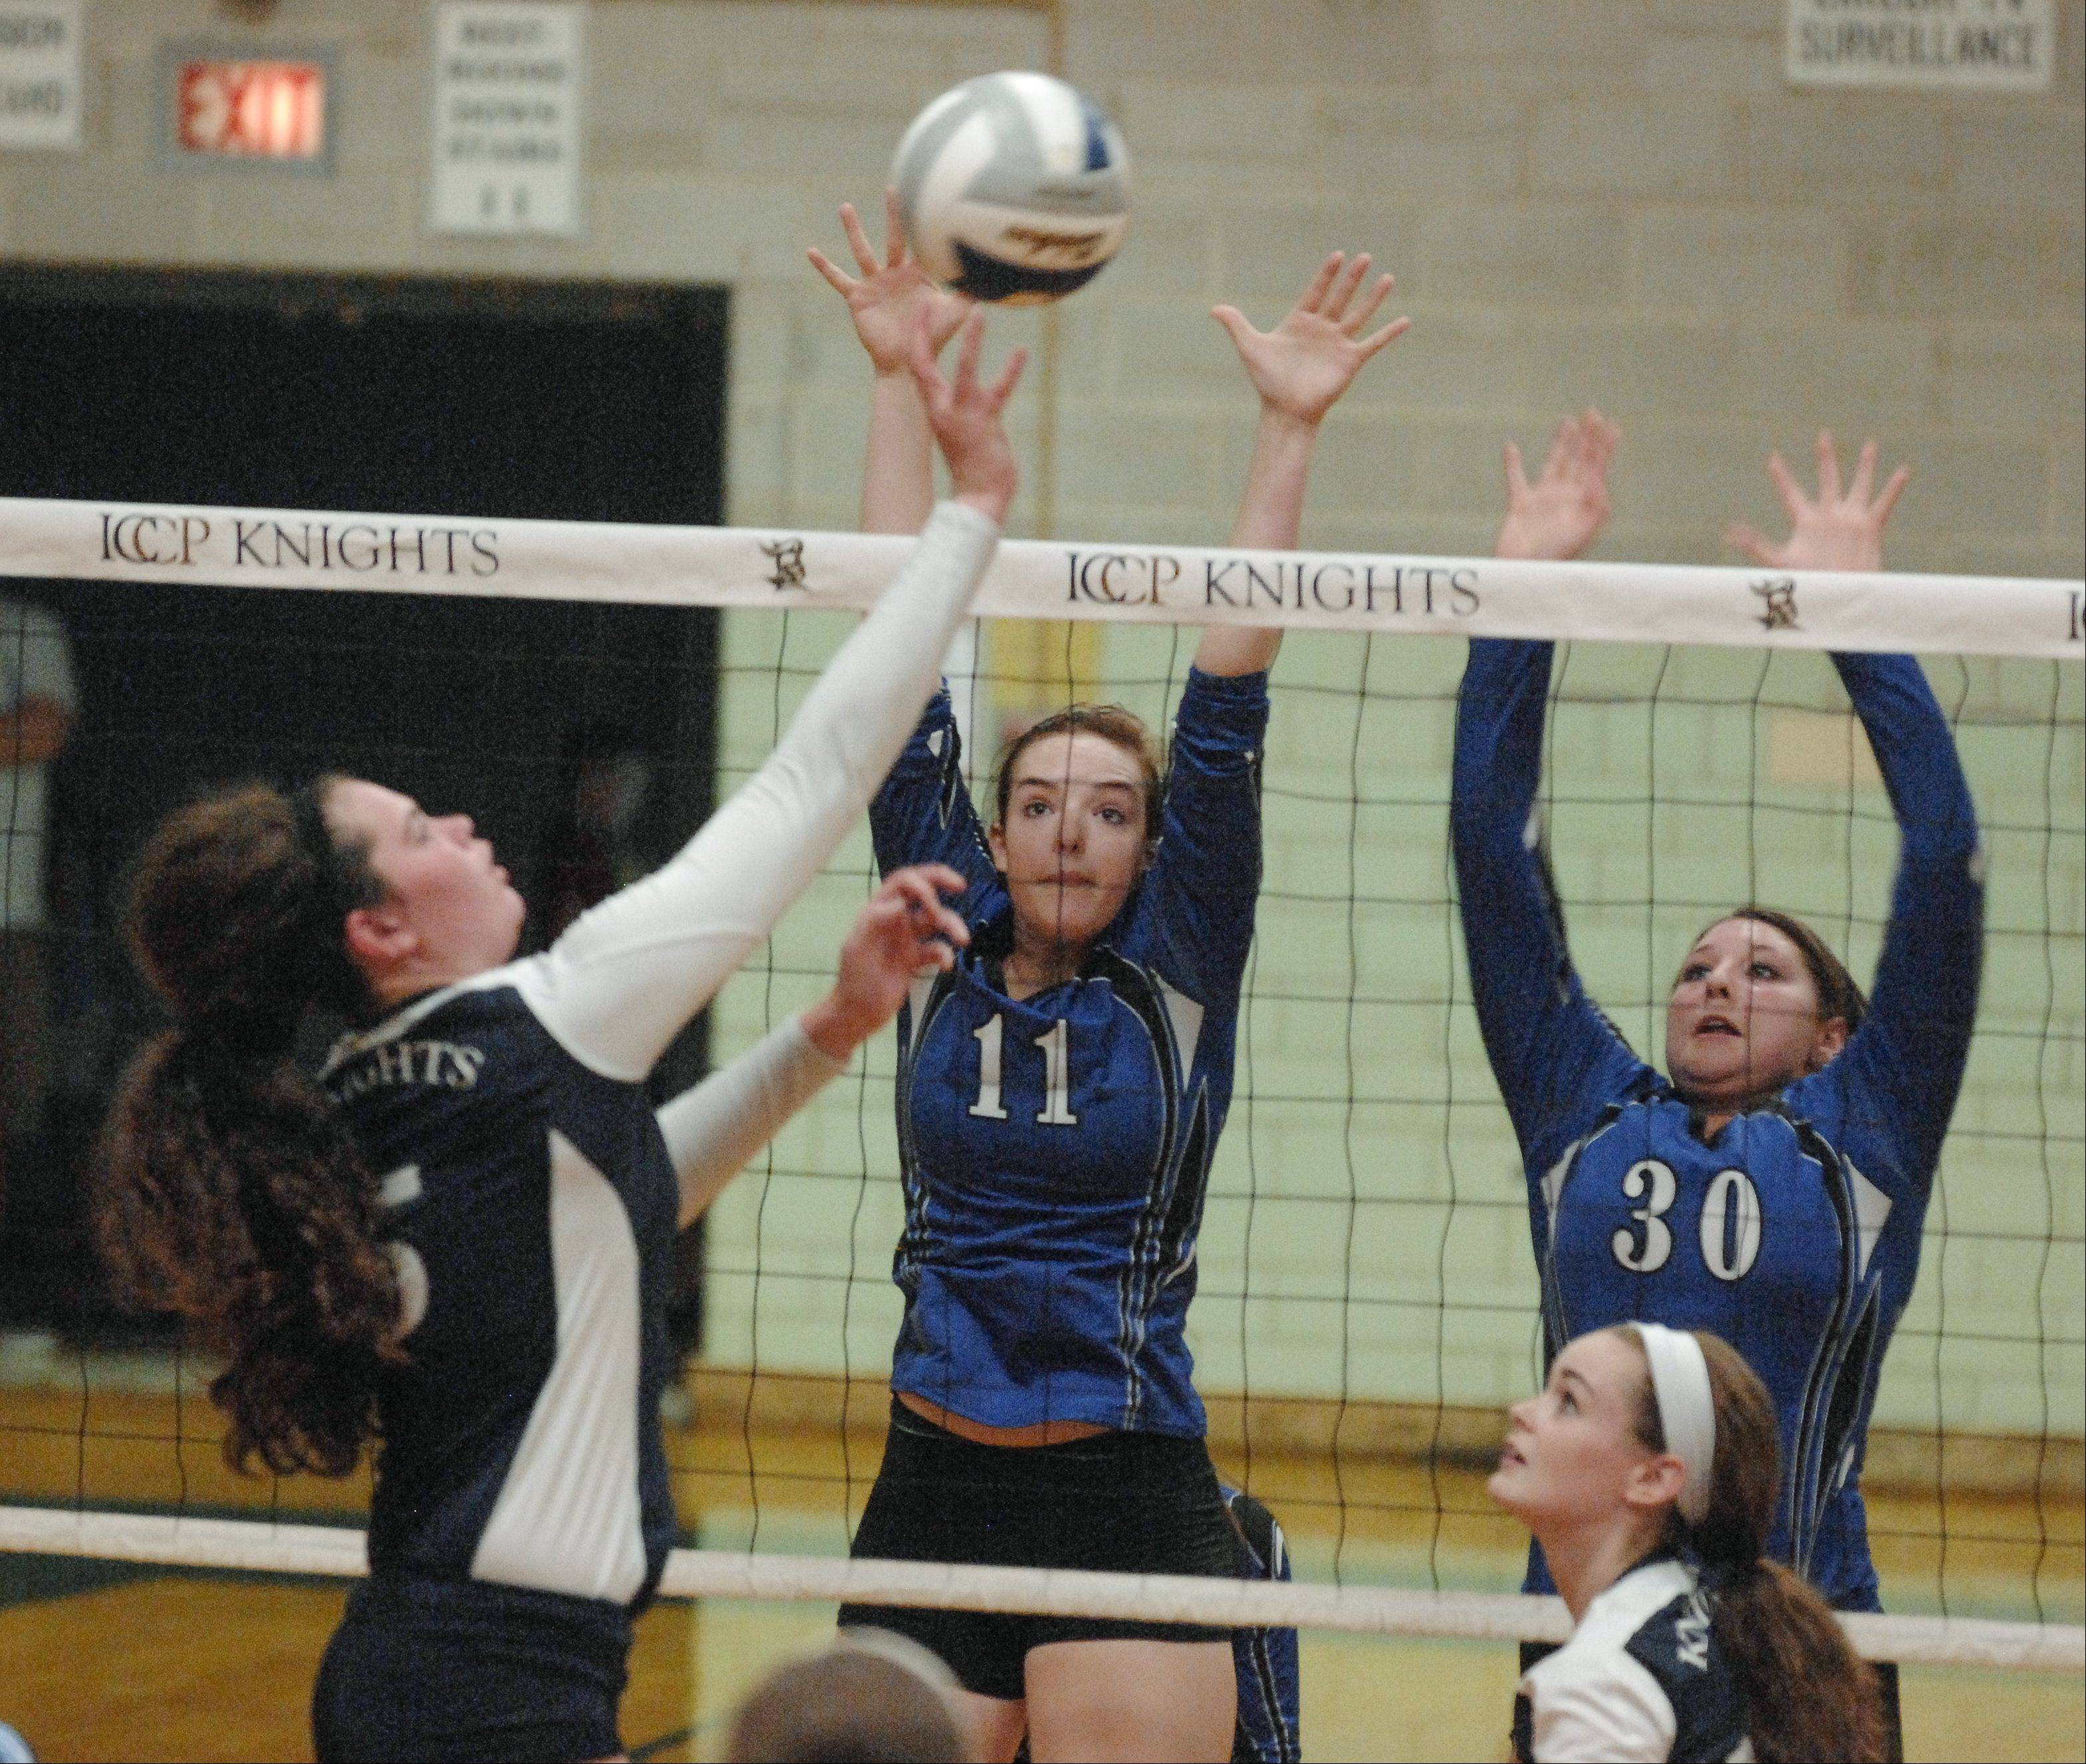 Rory Manion of IC Catholic Prep hits one past Becca Shearer and Kristin Acciavatti of St. Francis during girls volleyball in Elmhurst, Wednesday.